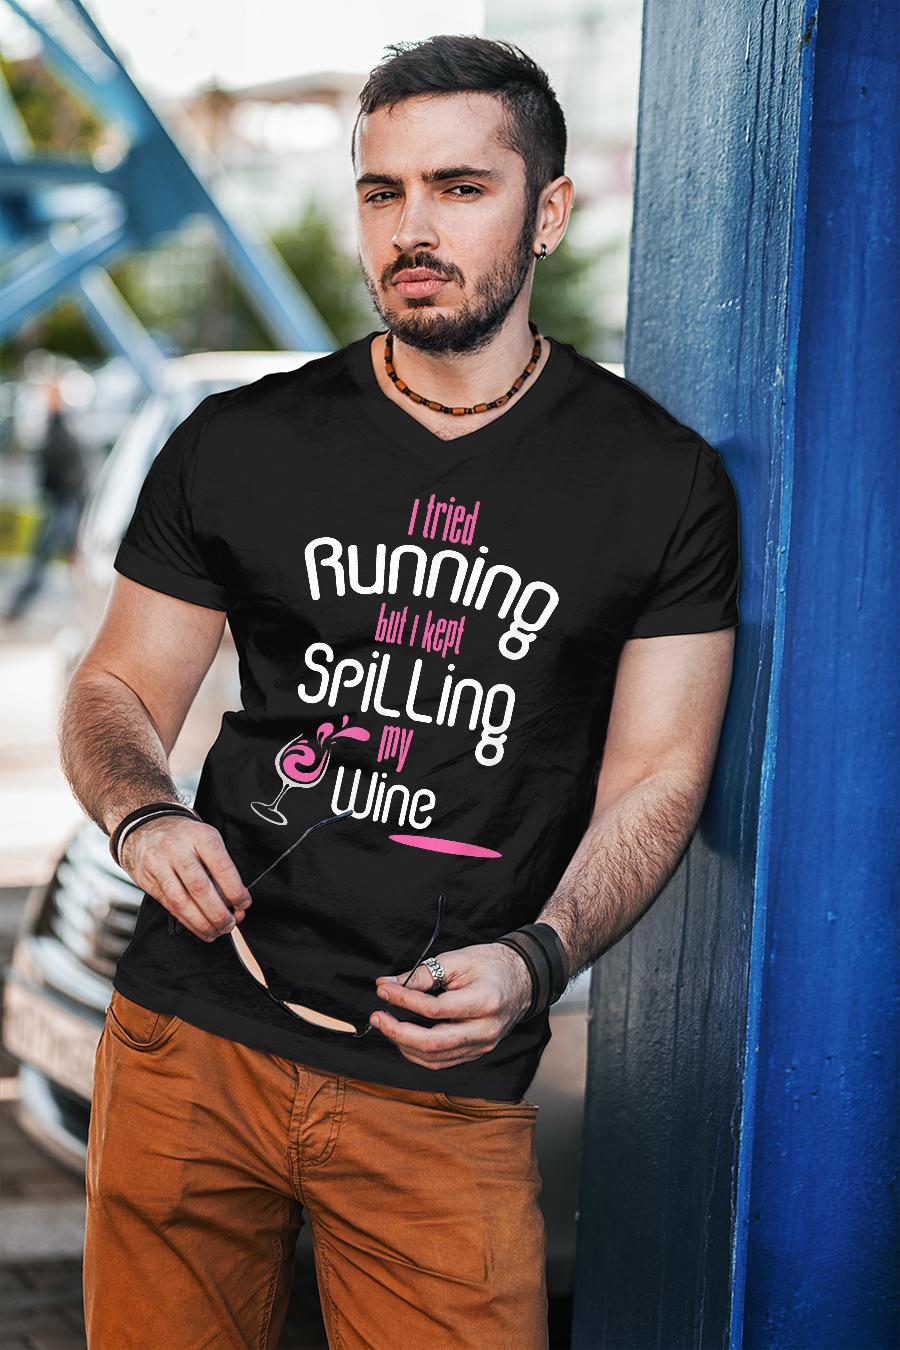 I Tried Running Shirt unisex